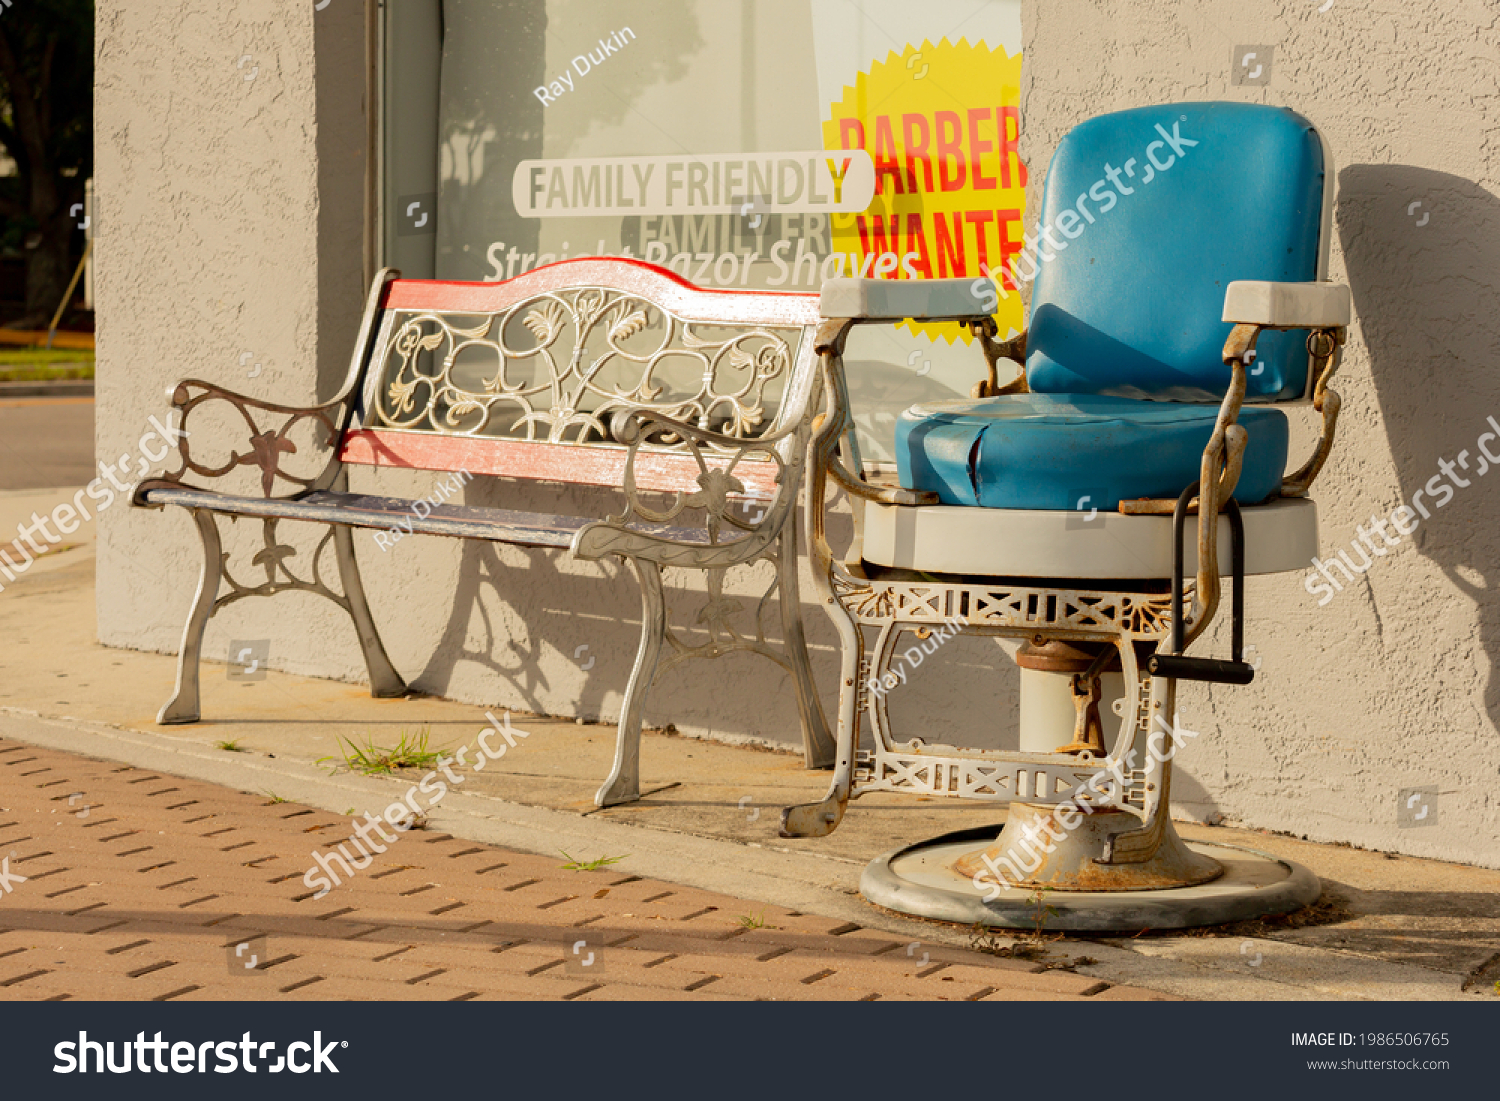 Antique style barber chair next to a bench on a sidewalk